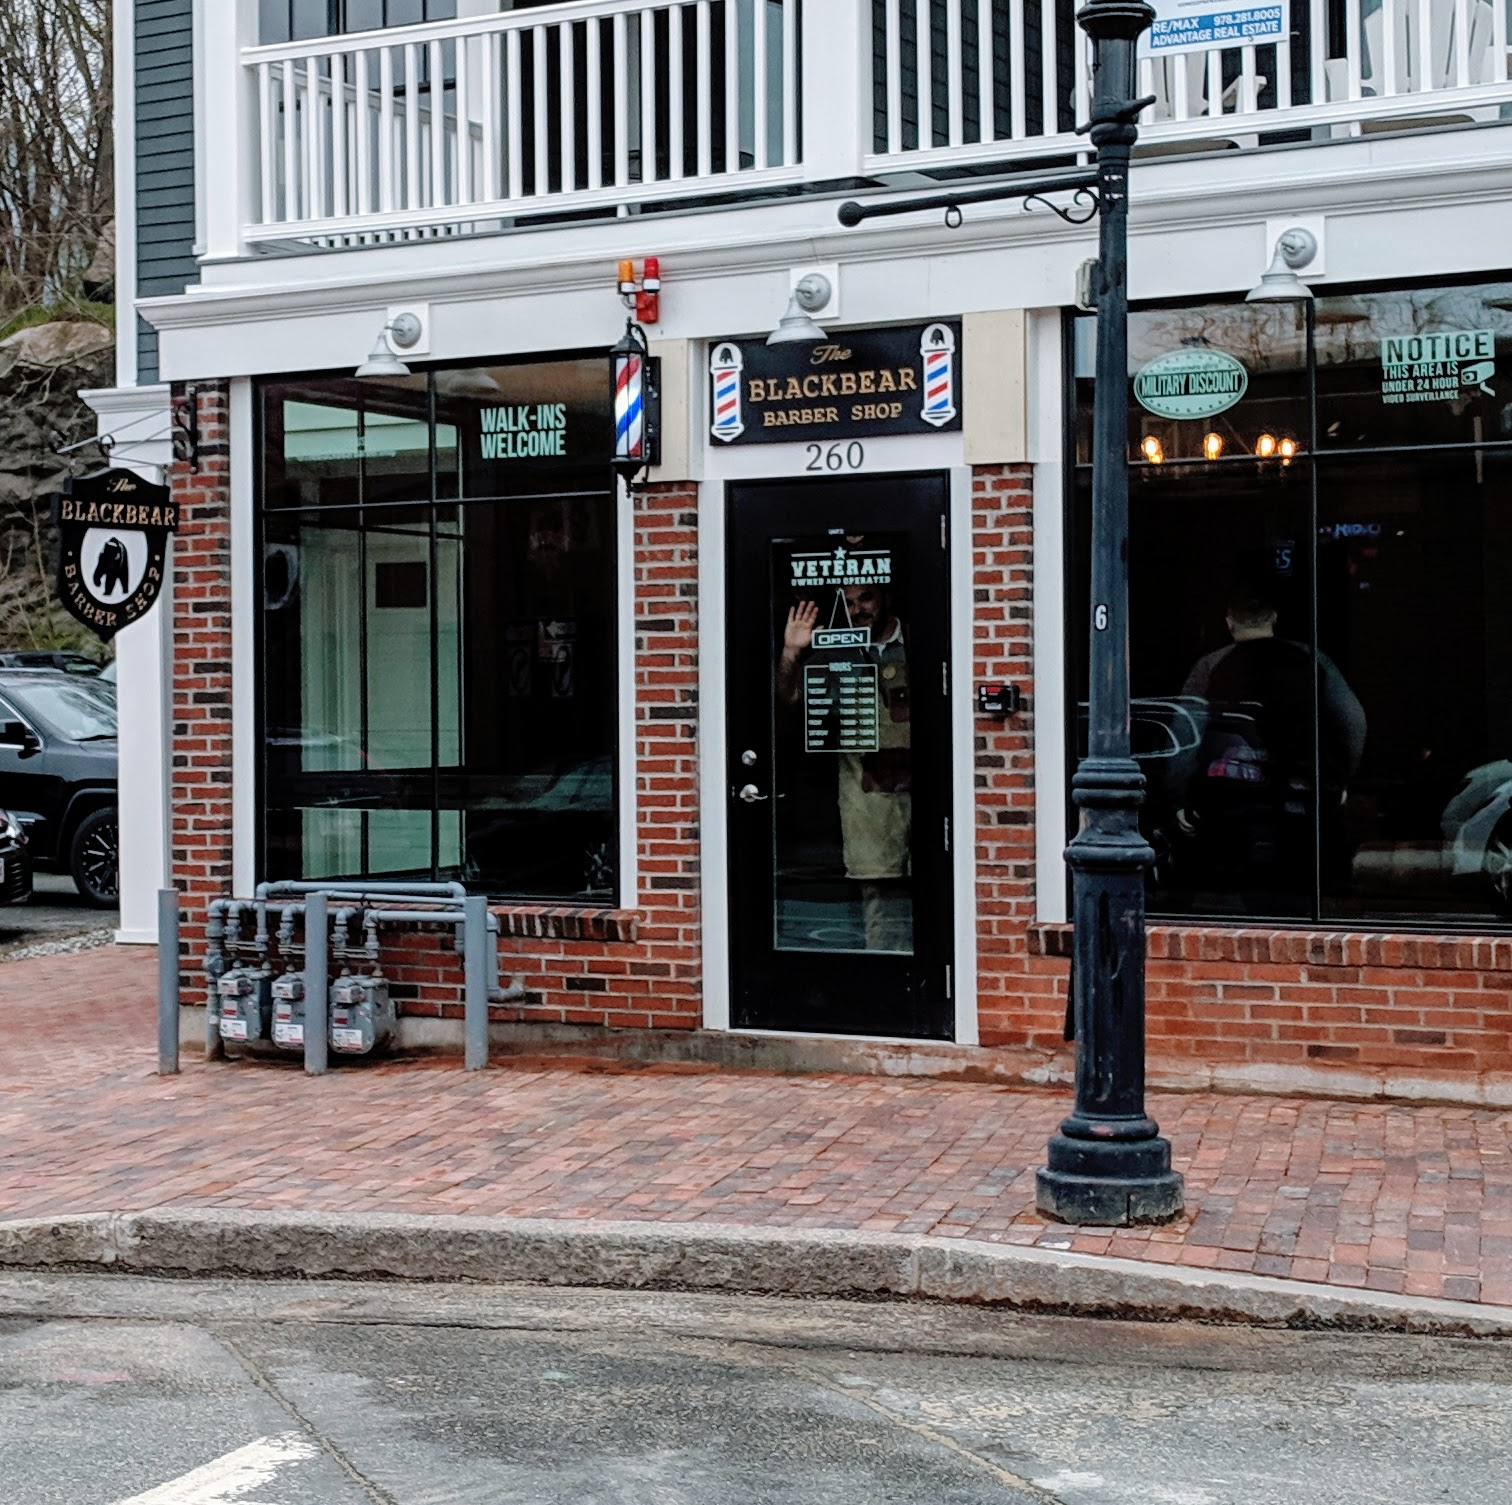 The Blackbear Barber Shop_260 Main Street_Gloucester MA_opens this week20190426_© c ryan.jpg